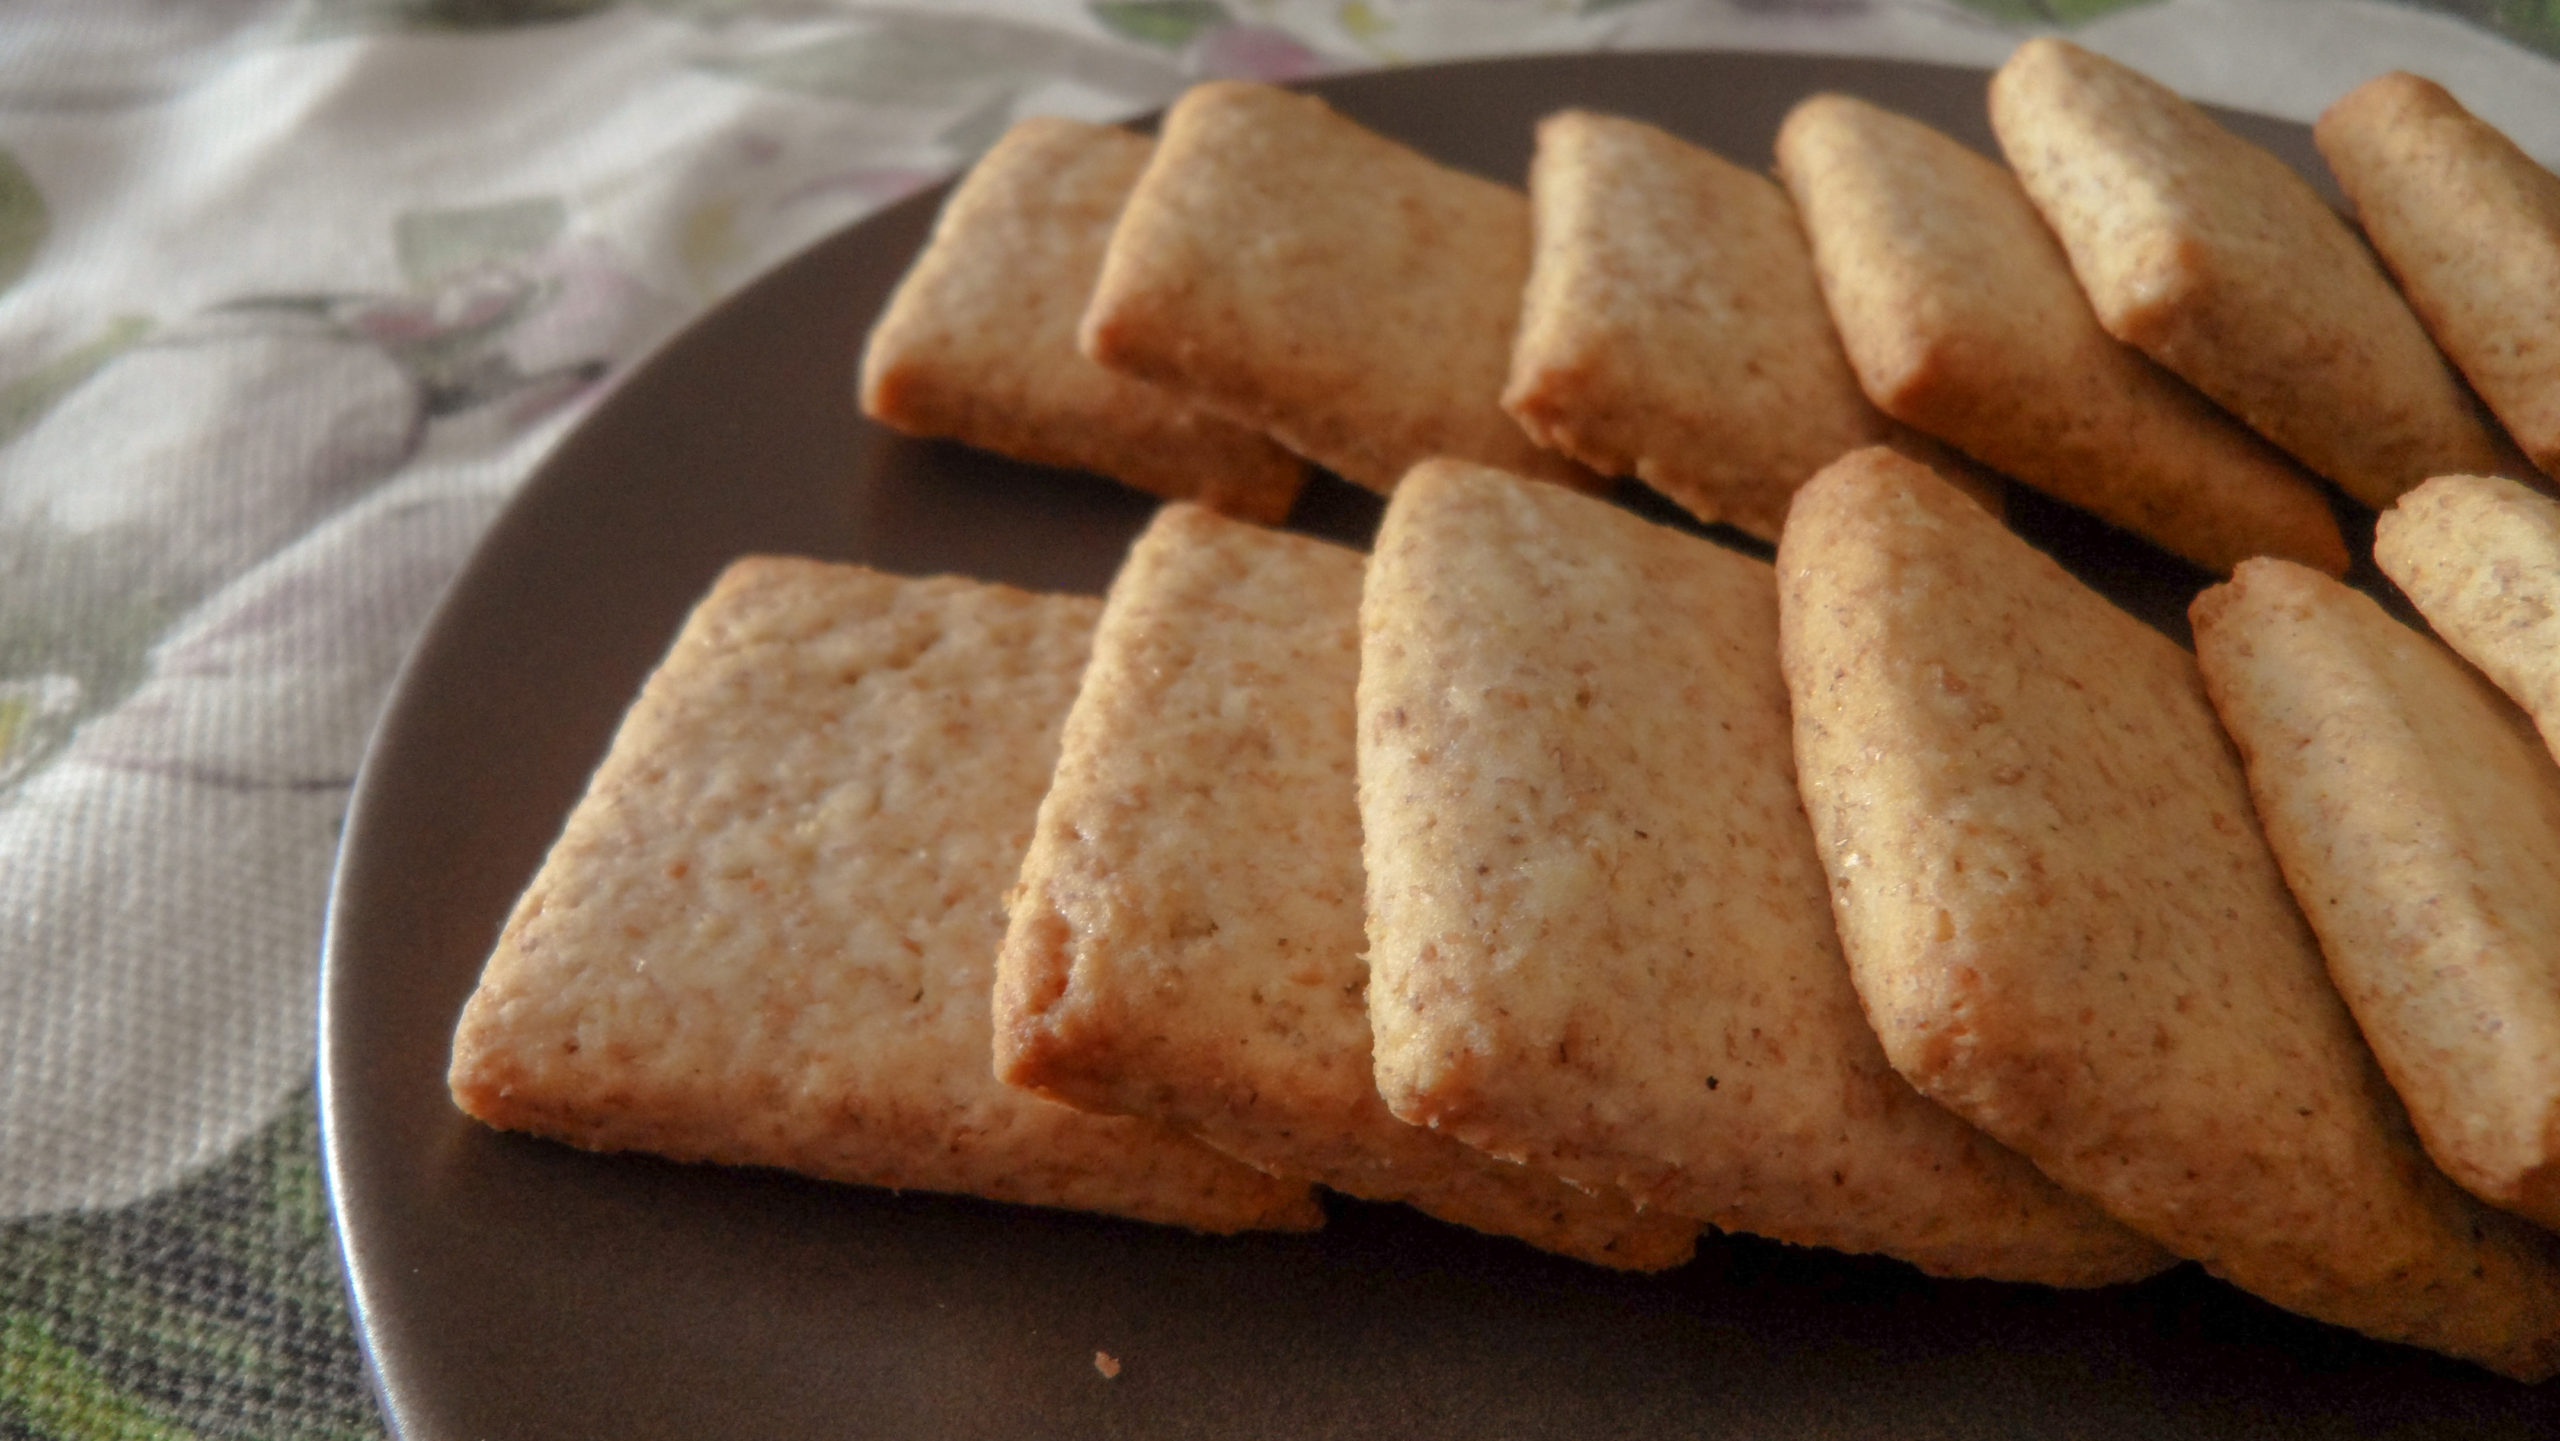 Integral shortbread cookies without eggs